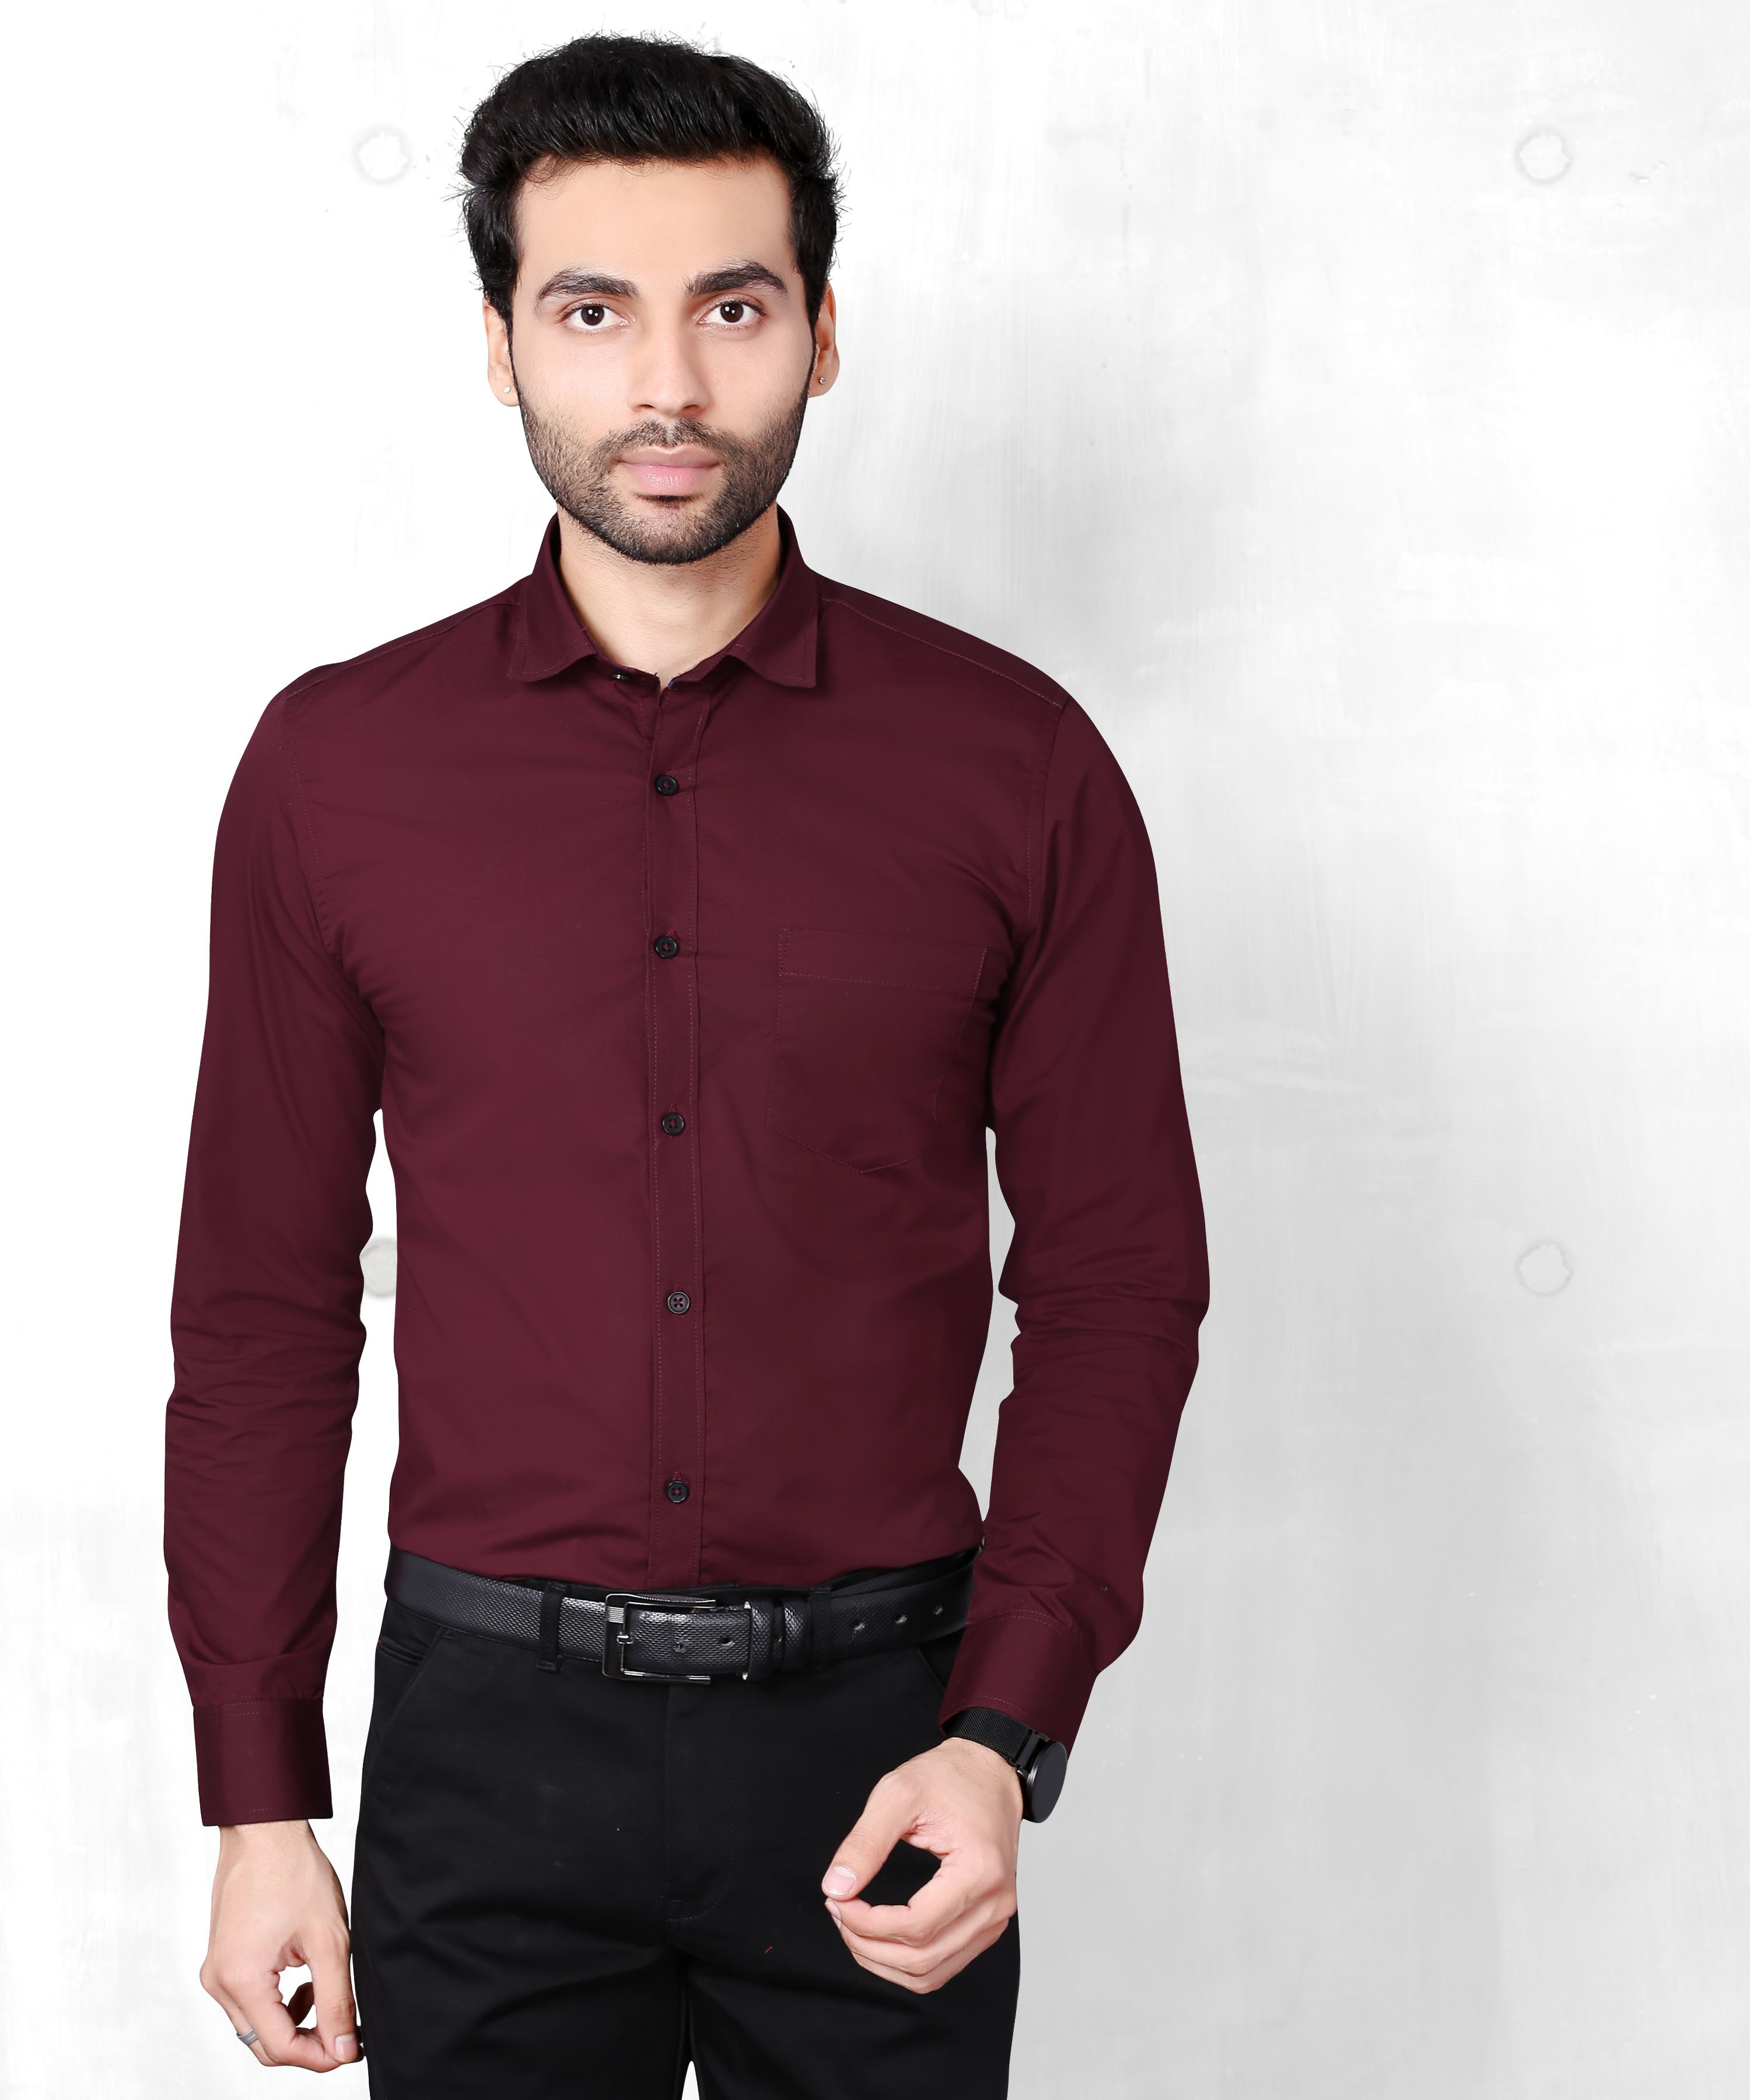 FIFTH ANFOLD Solid Pure Cotton Formal Full Long Sleev Maroon Spread Collar Mens Shirt